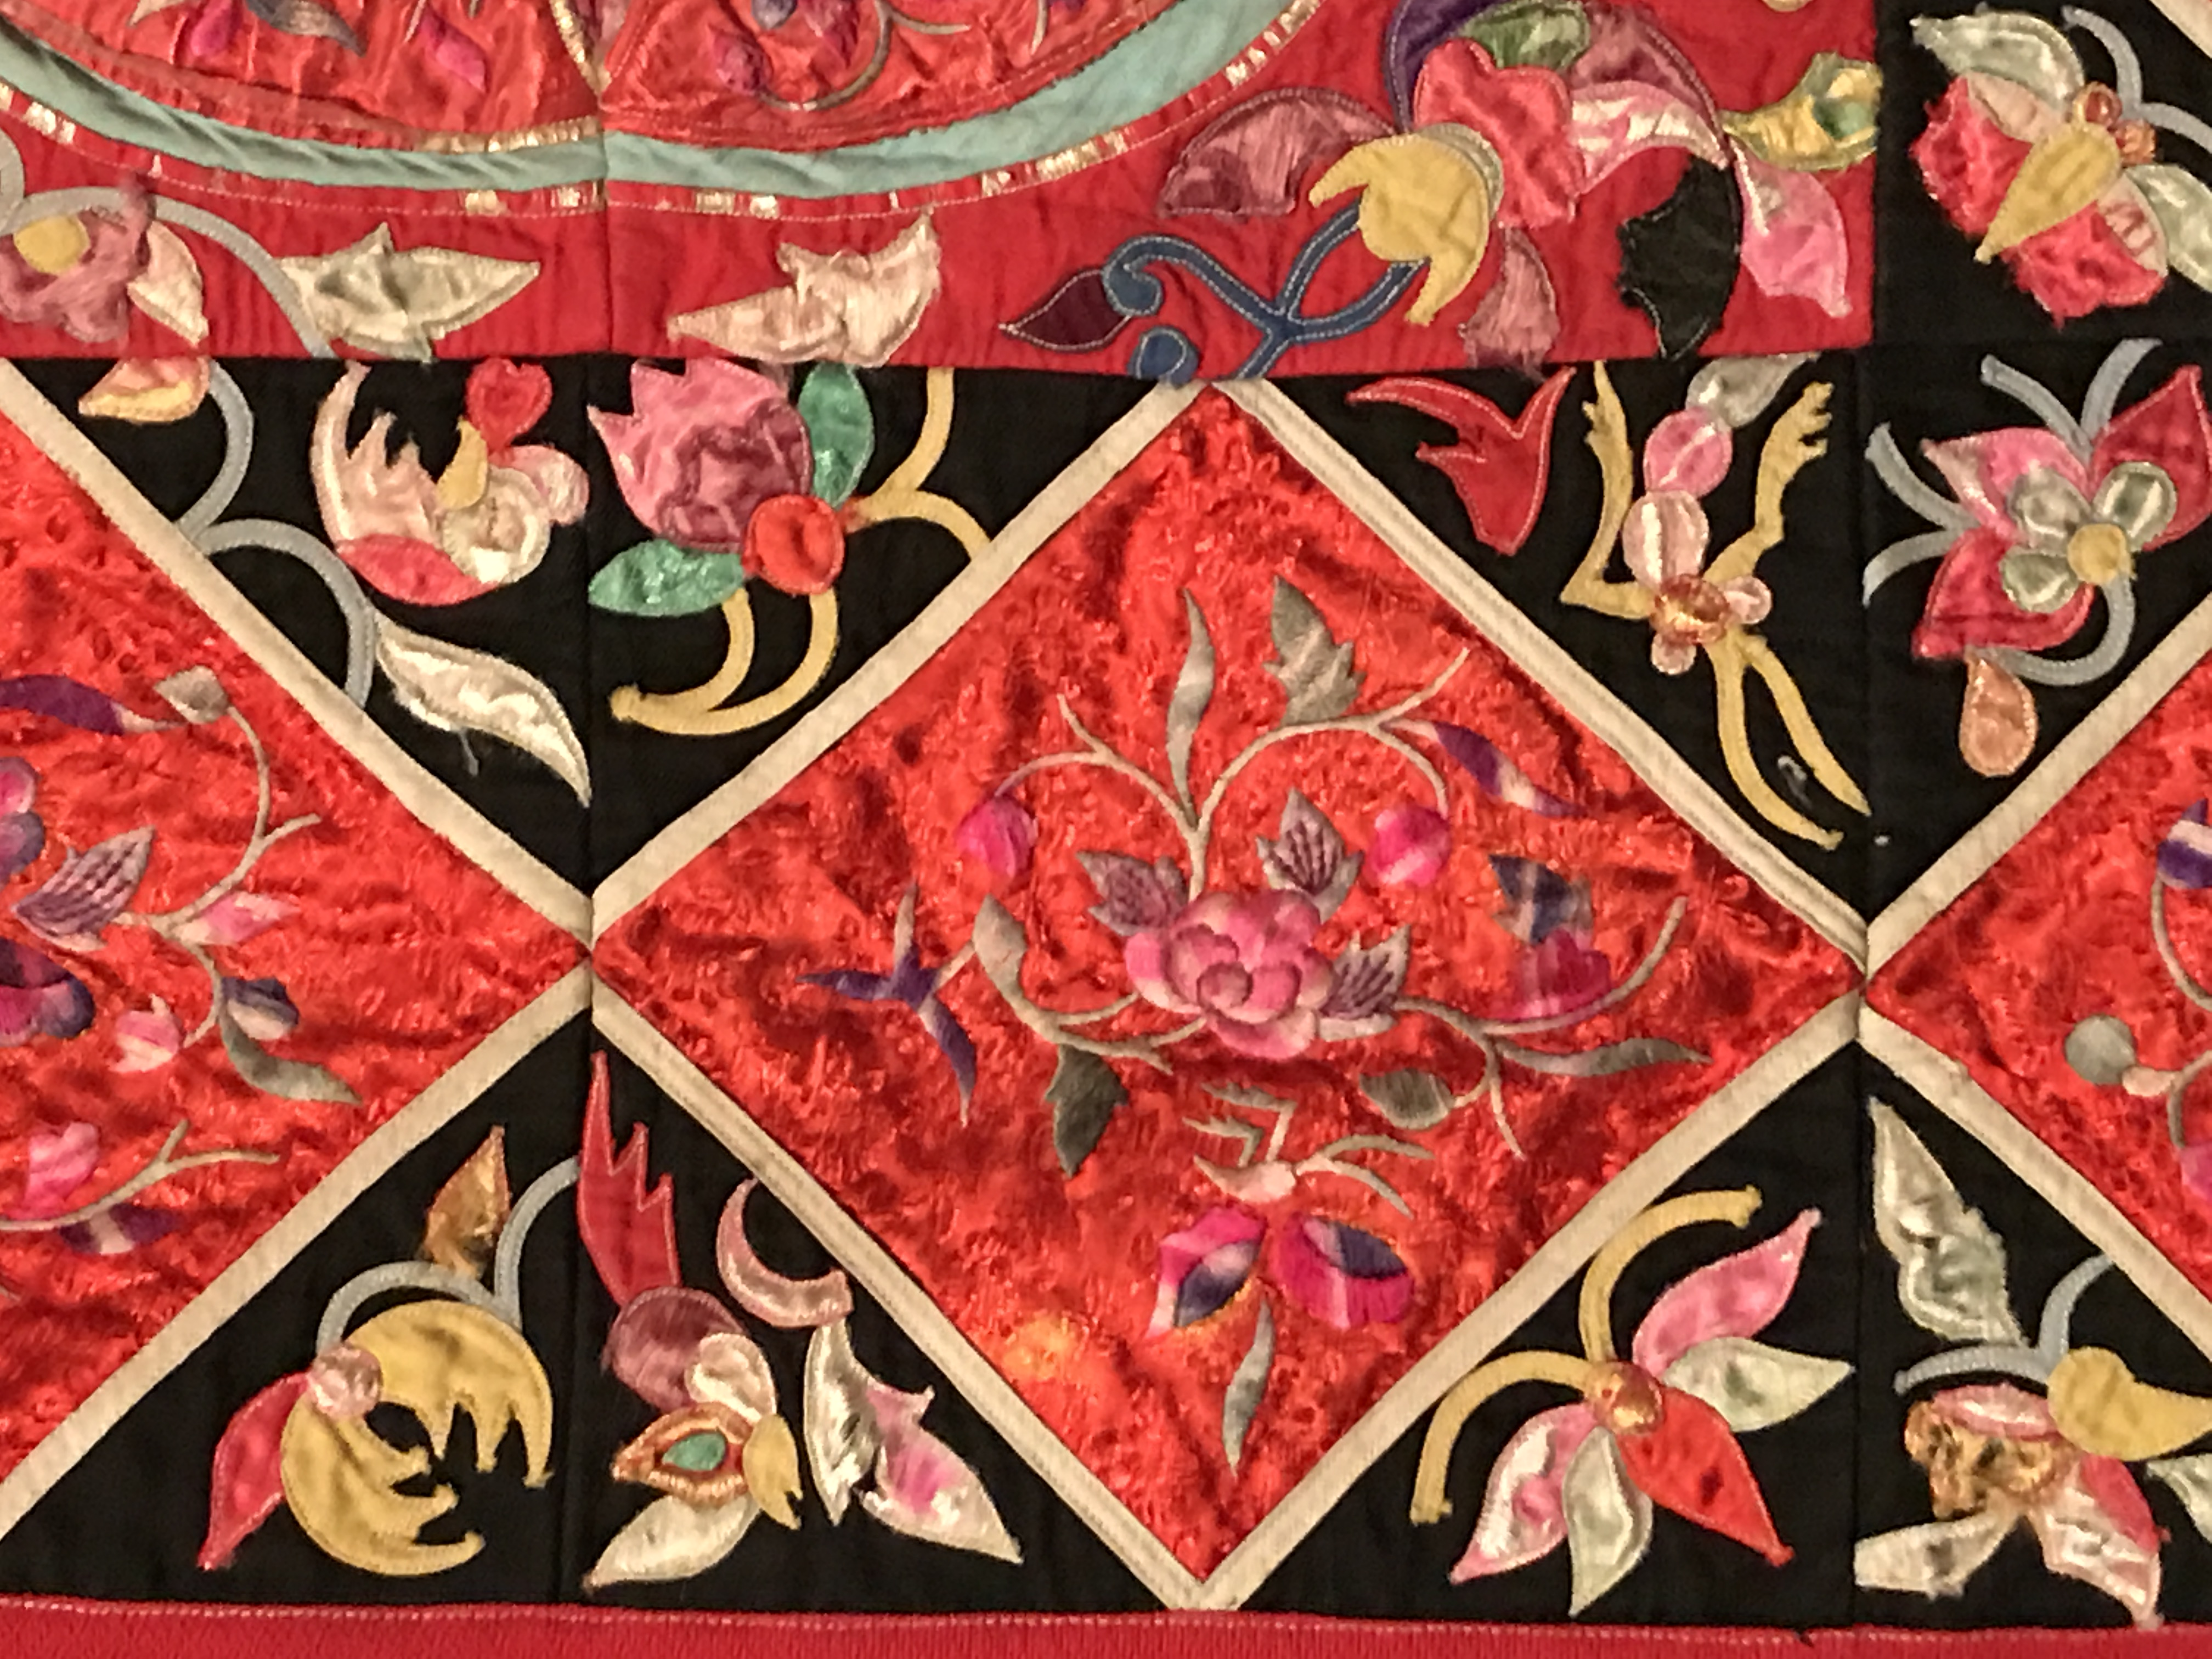 RED AND BLACK QUILT WITH FLOWERS FROM SOUTHWEST CHINA